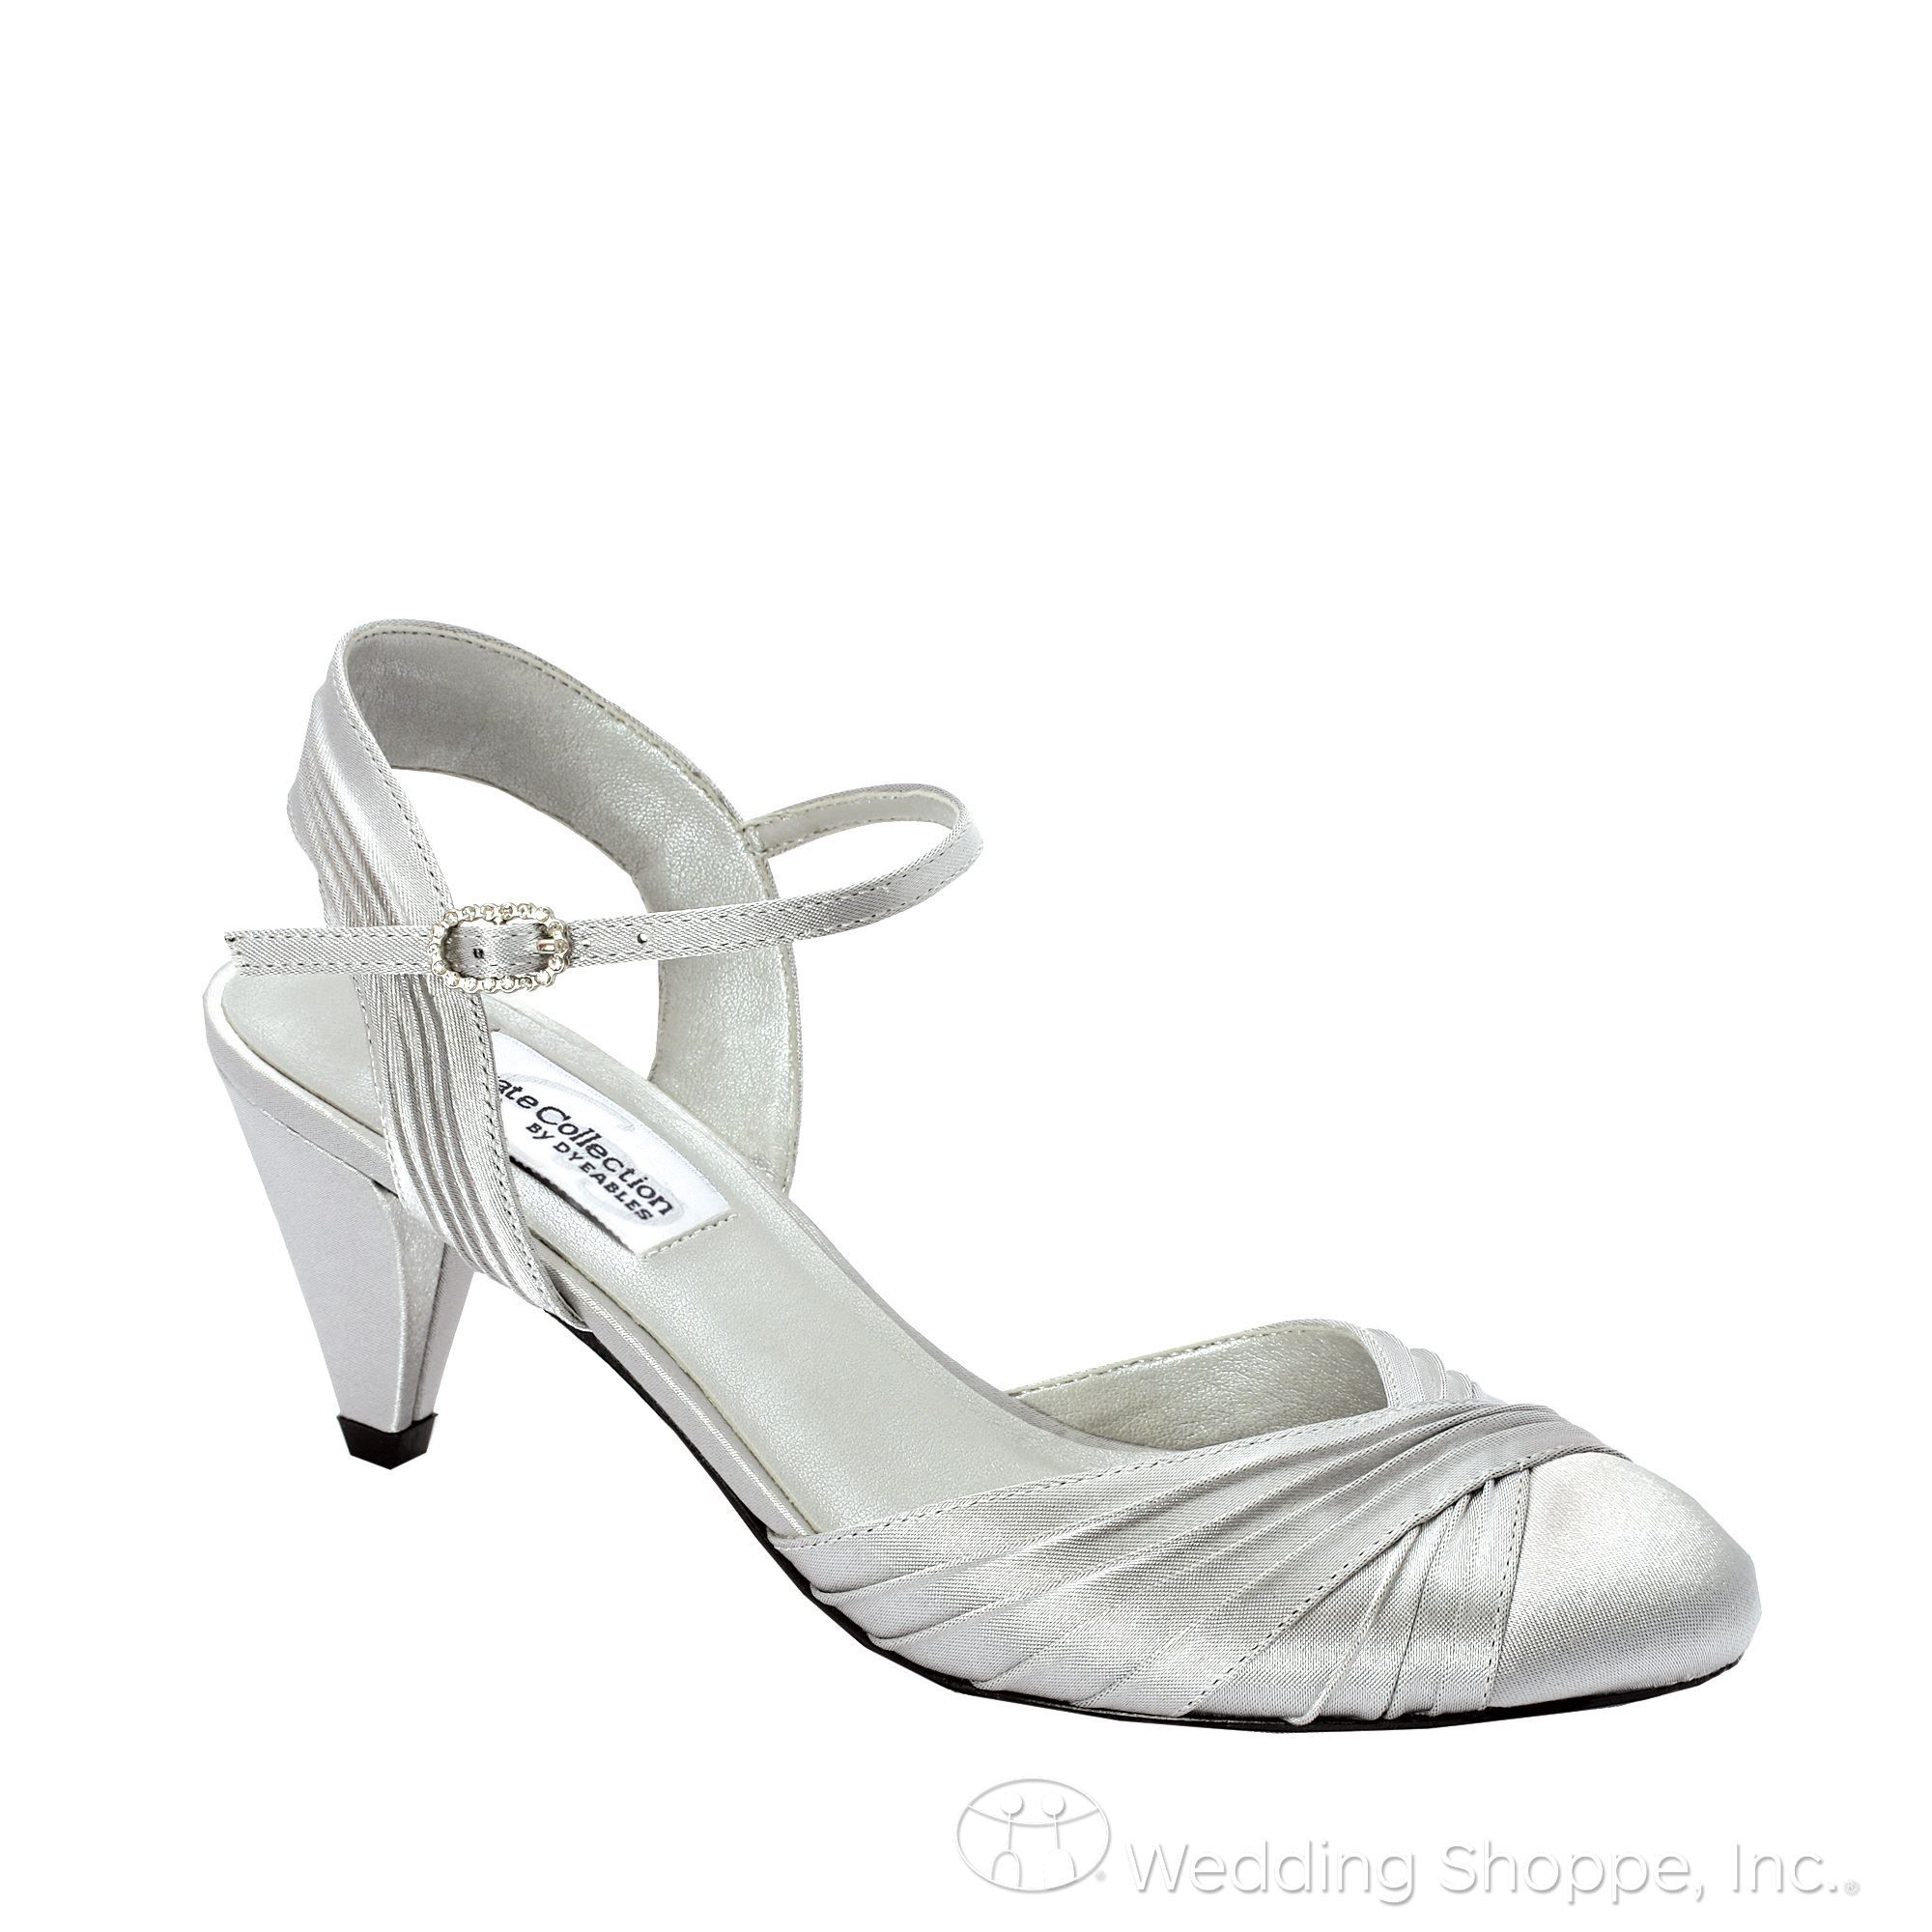 There are lots of wide width dress shoes designed for evening wear from  metallic sandals to sexy pumps.